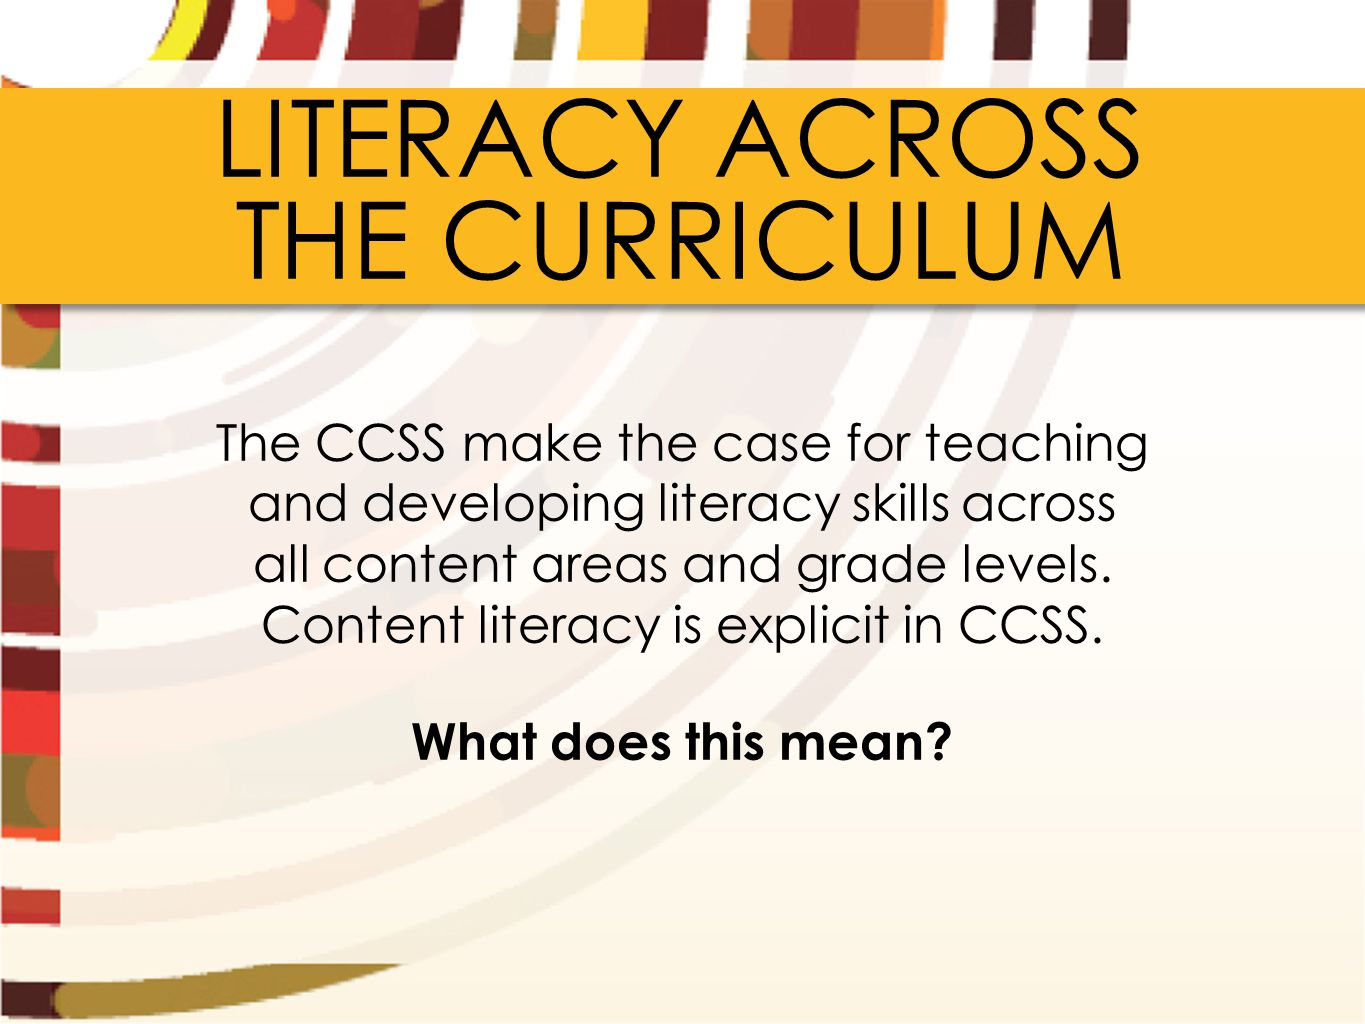 LITERACY ACROSS THE CURRICULUM The CCSS make the case for teaching and developing literacy skills across all content areas and grade levels. Content l